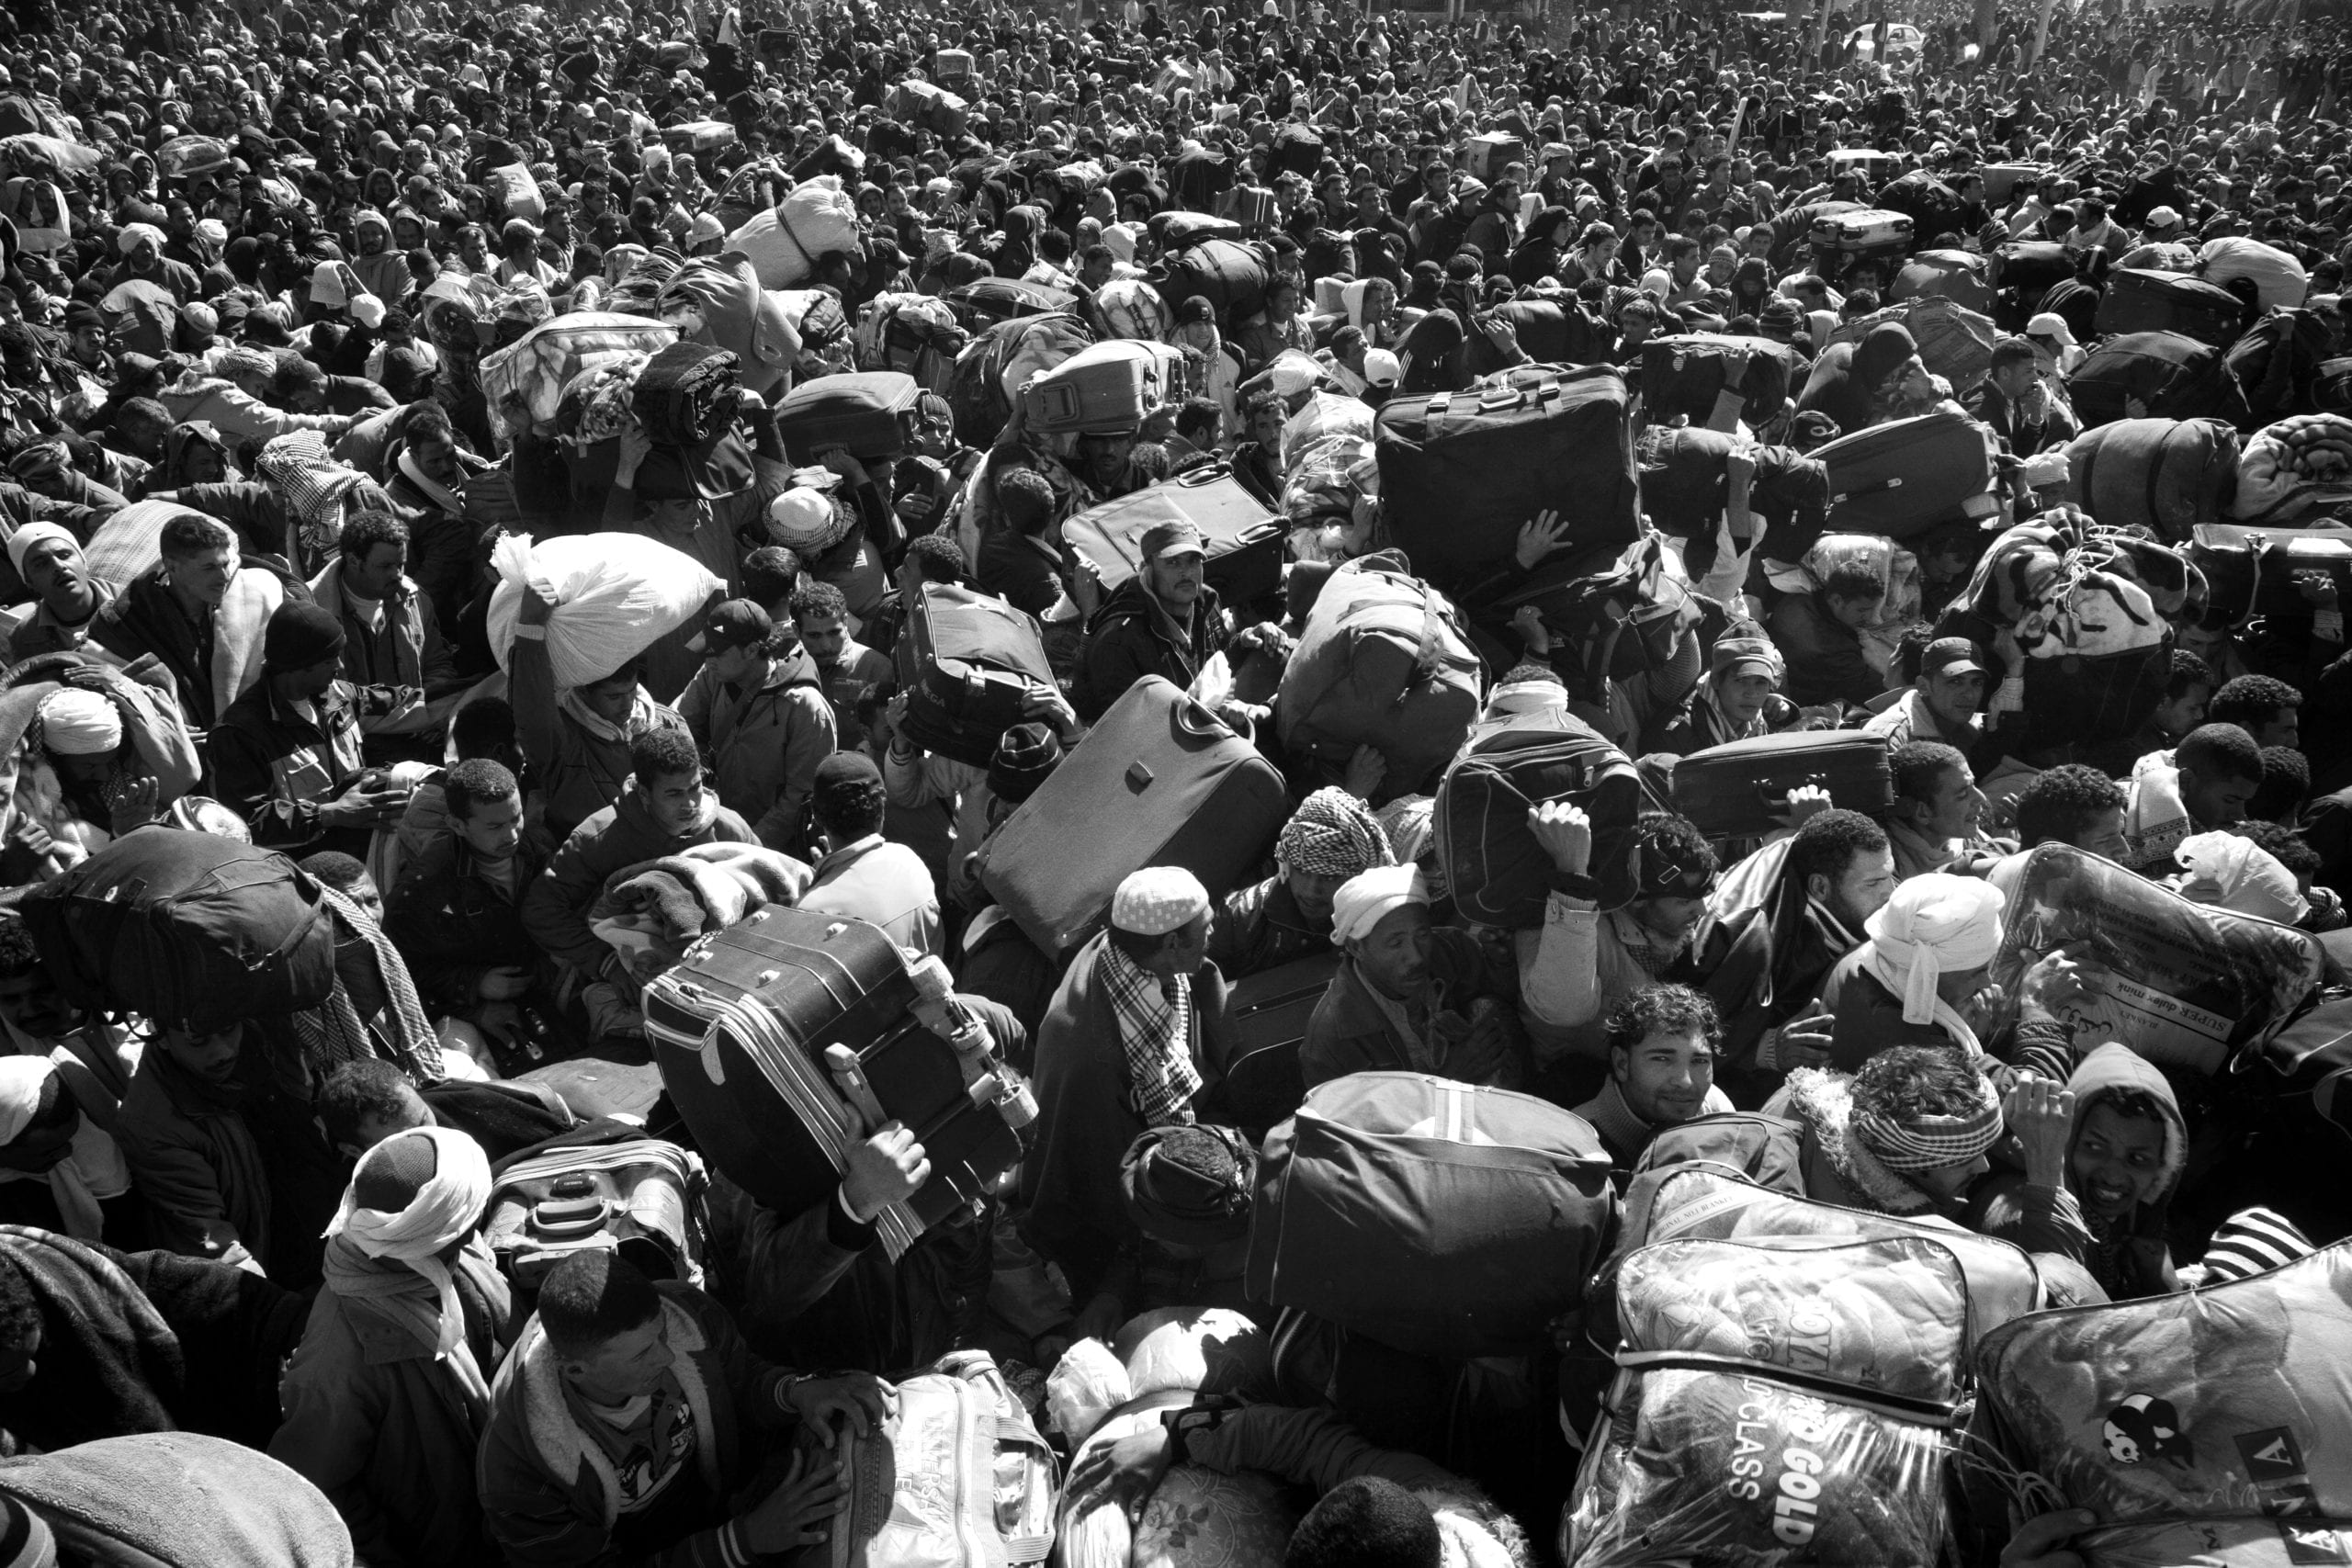 Tunisian, Egyptian and other nationals flee Libya during fighting between rebels and pro Qaddafi forces and arrive at the border crossing in Ras Jdir near Ben Gardenne, Tunisia. 2011